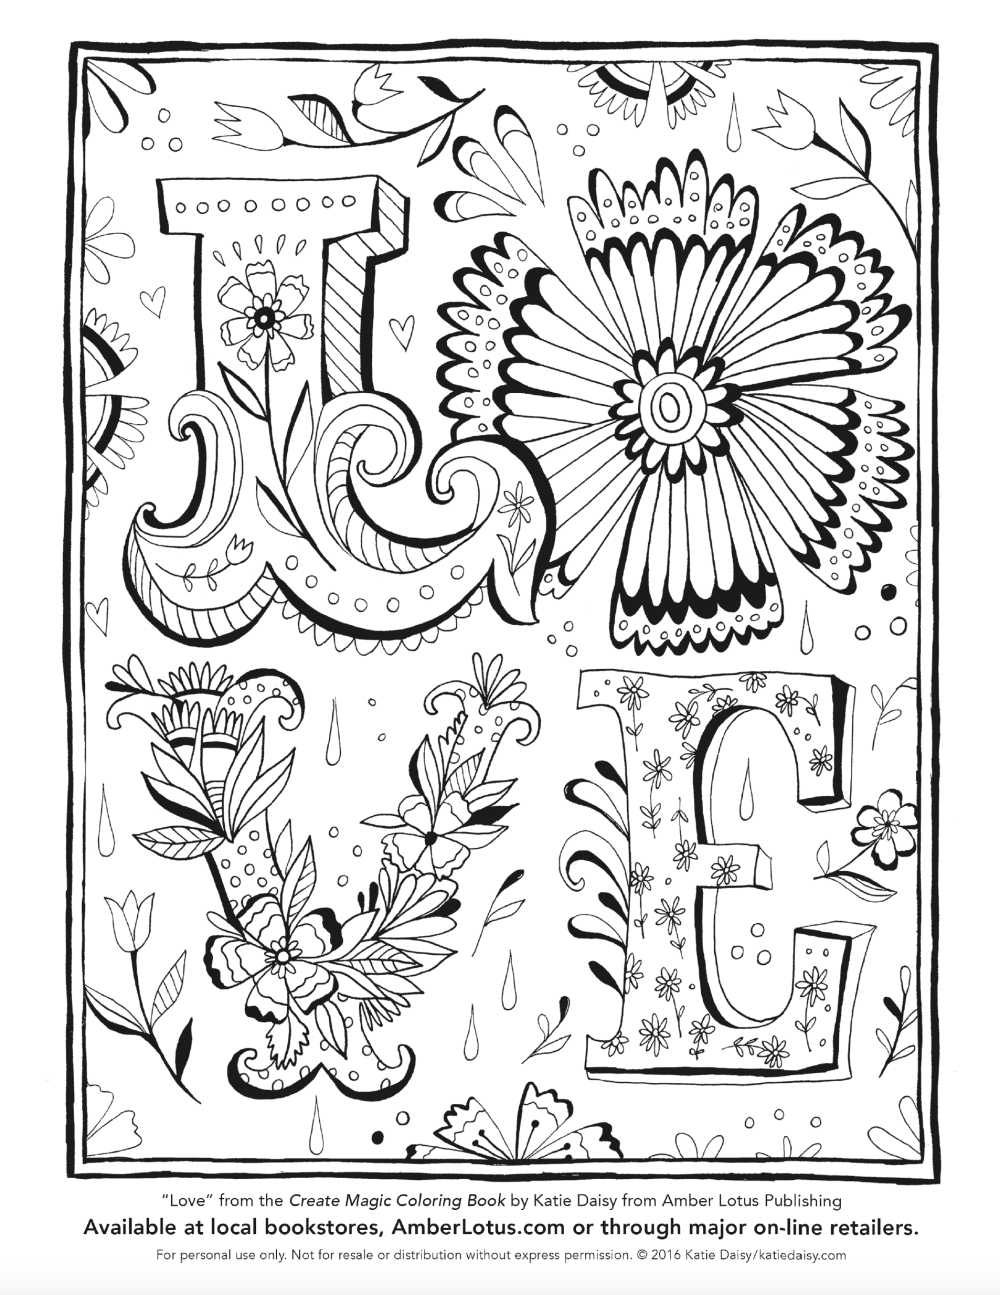 Love coloring page by Katie Daisy from the Create Magic Coloring ...